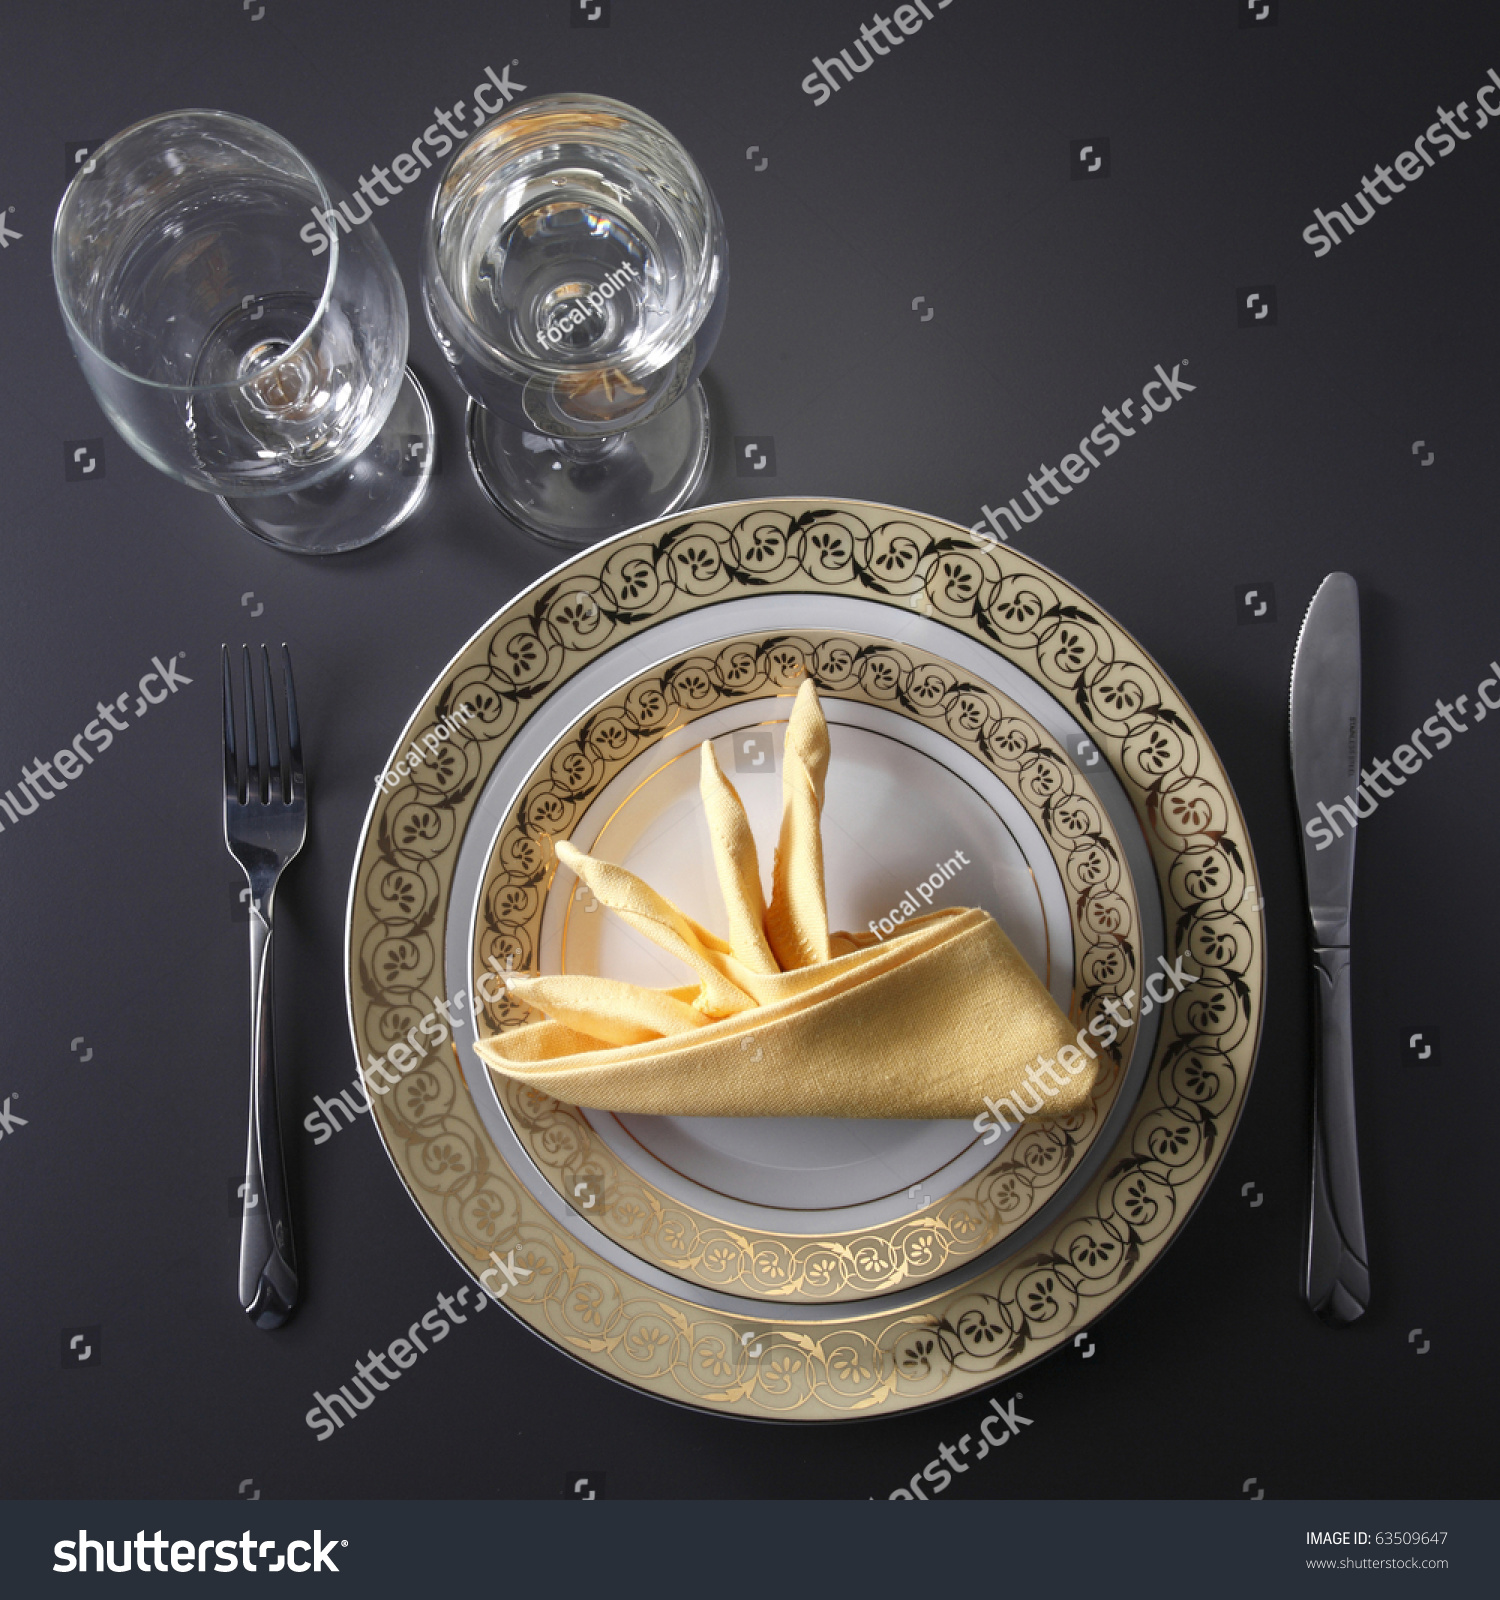 Fine Dining Table Setting Image fine dining table set up  : stock photo table setting for fine dining or party cutlery and plate set up for wedding celebration 63509647 from hotrodhal.com size 1500 x 1600 jpeg 781kB